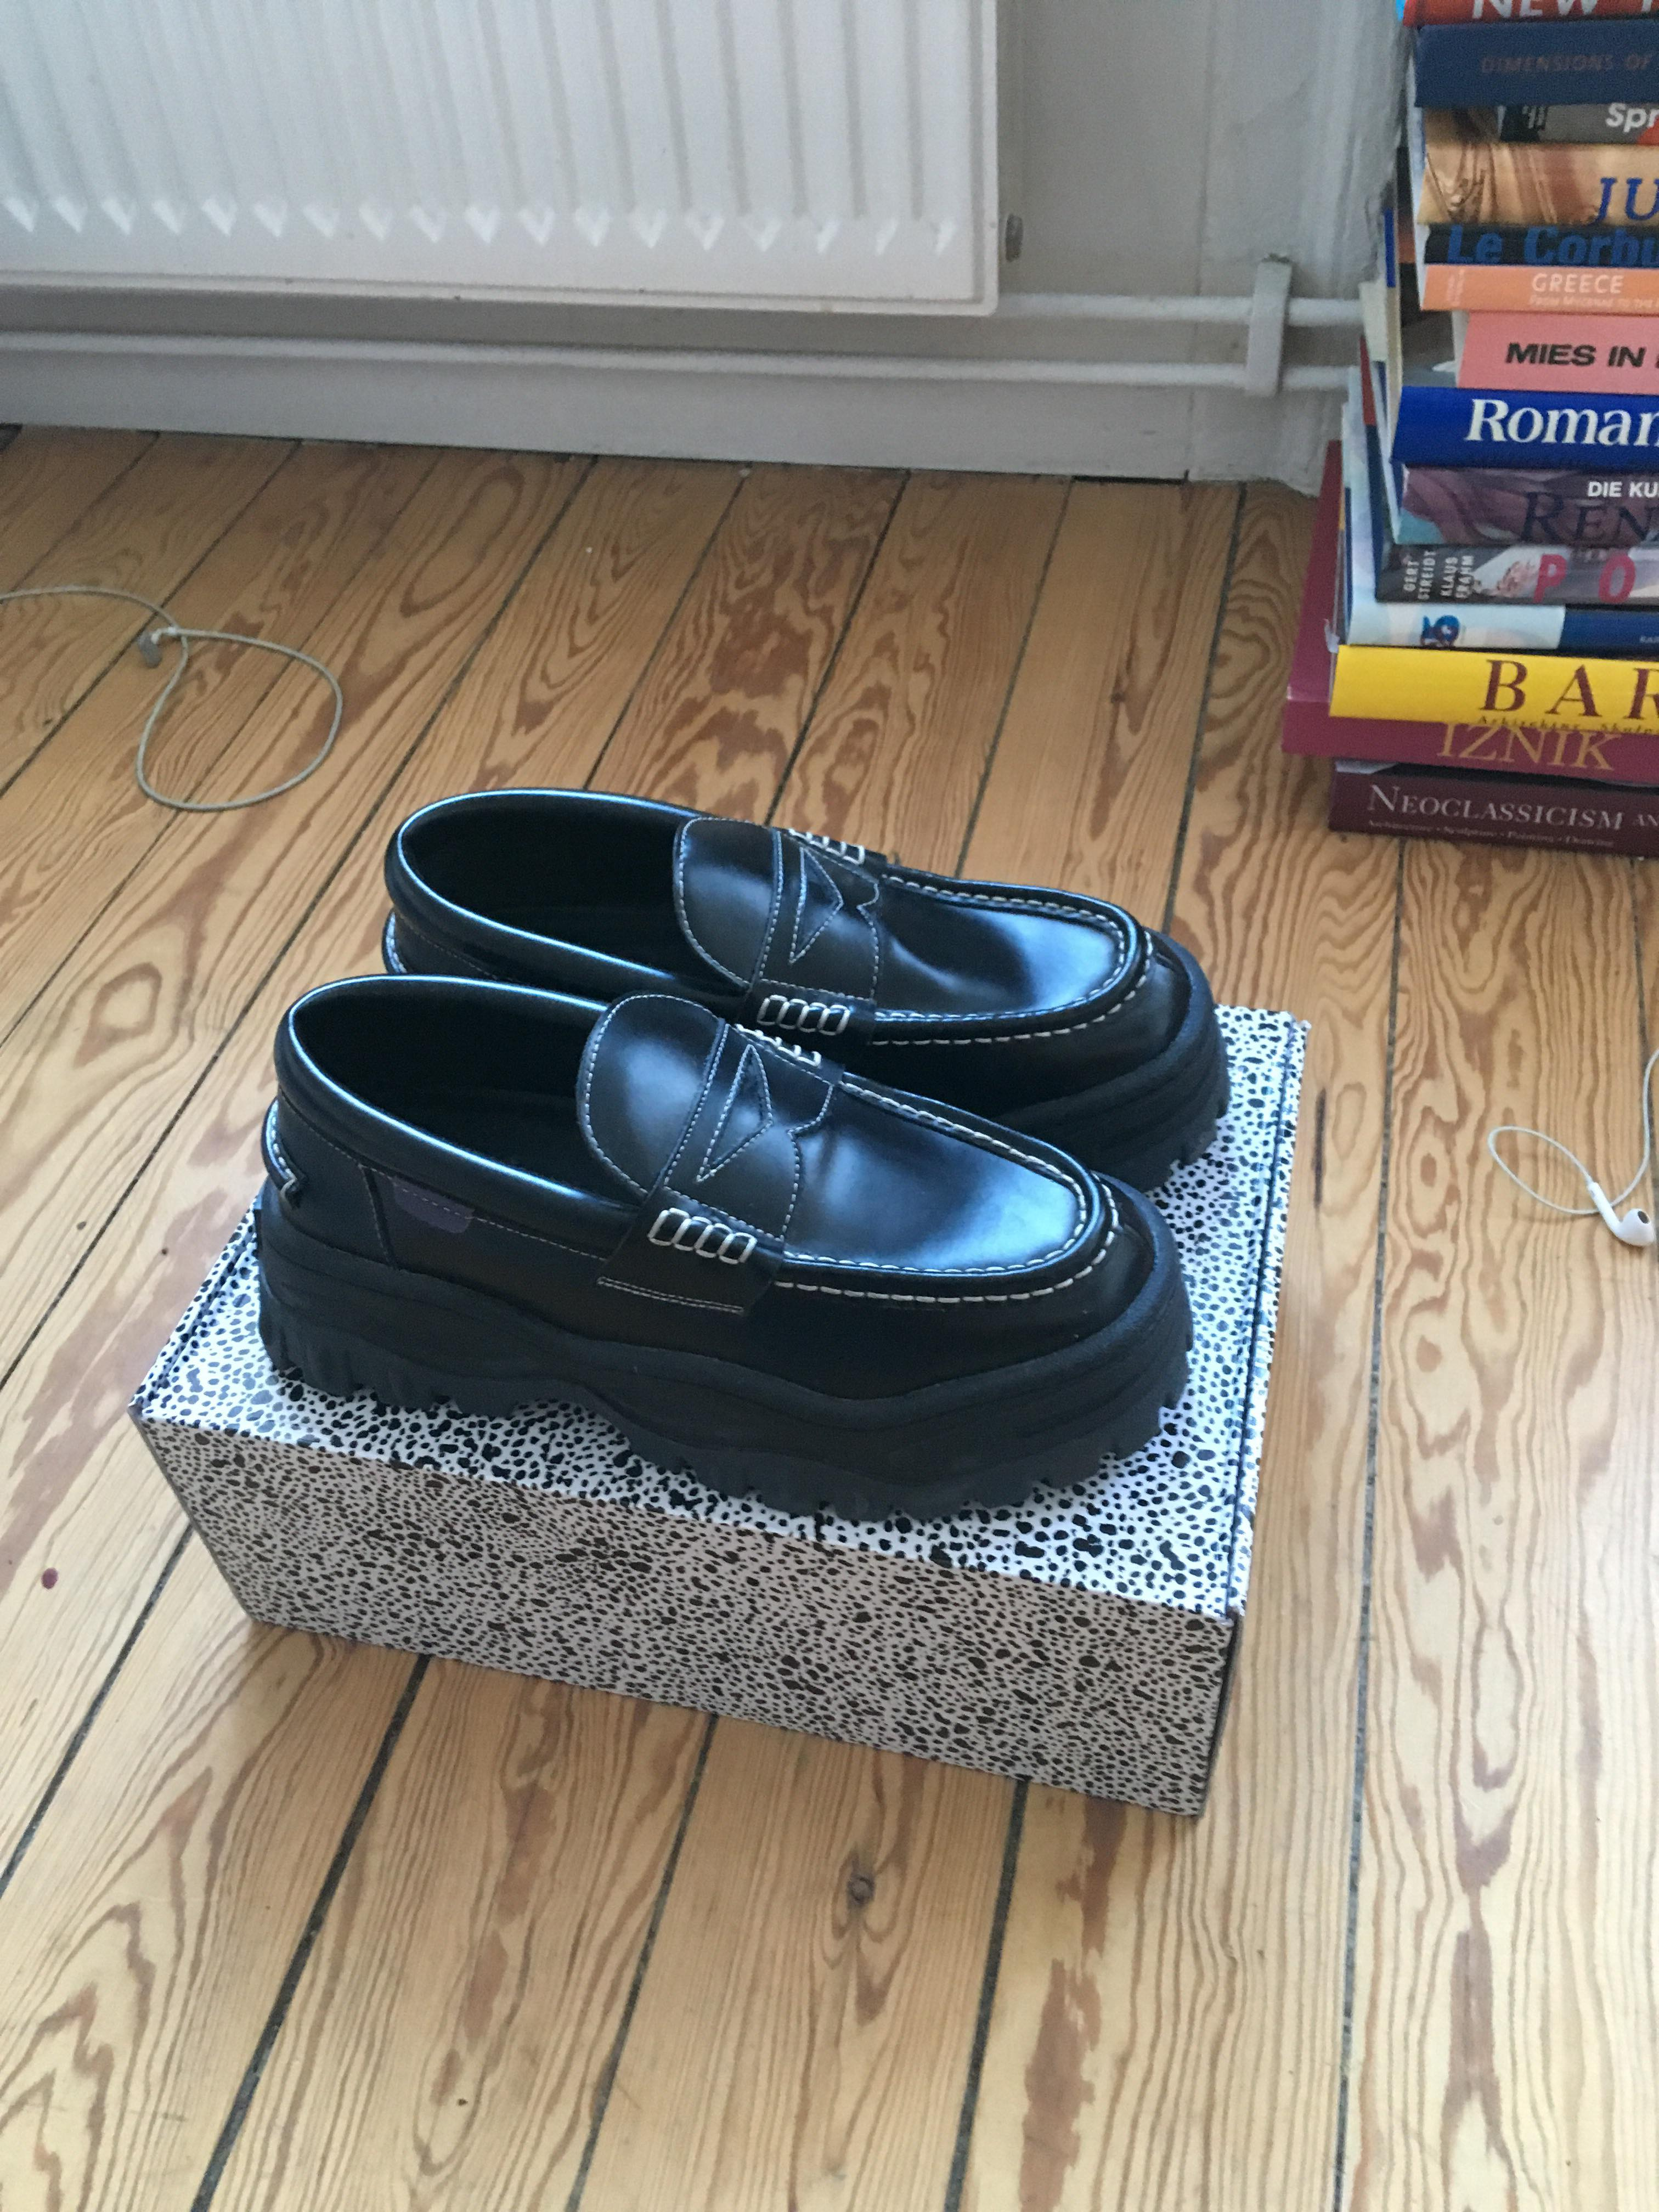 8dc5ee9a318 Eytys Angelo Leather Size 10 - Casual Leather Shoes for Sale - Grailed